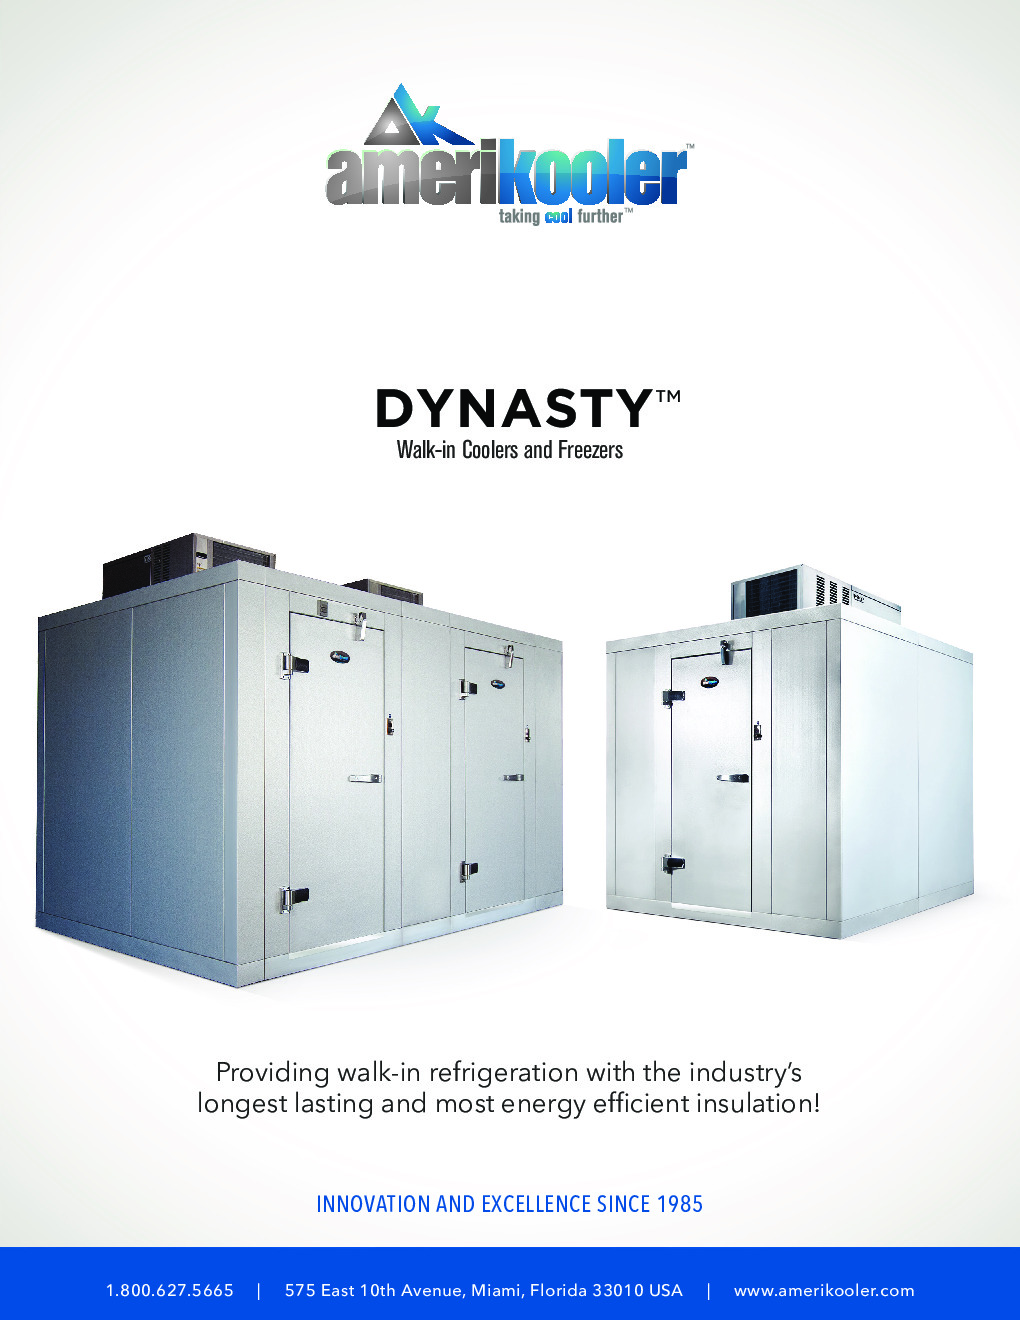 AmeriKooler DW101177N-5/6-RM 10' X 11' Walk-In Cooler, 6' L Cooler without Floor and 5' L Freezer, Remote